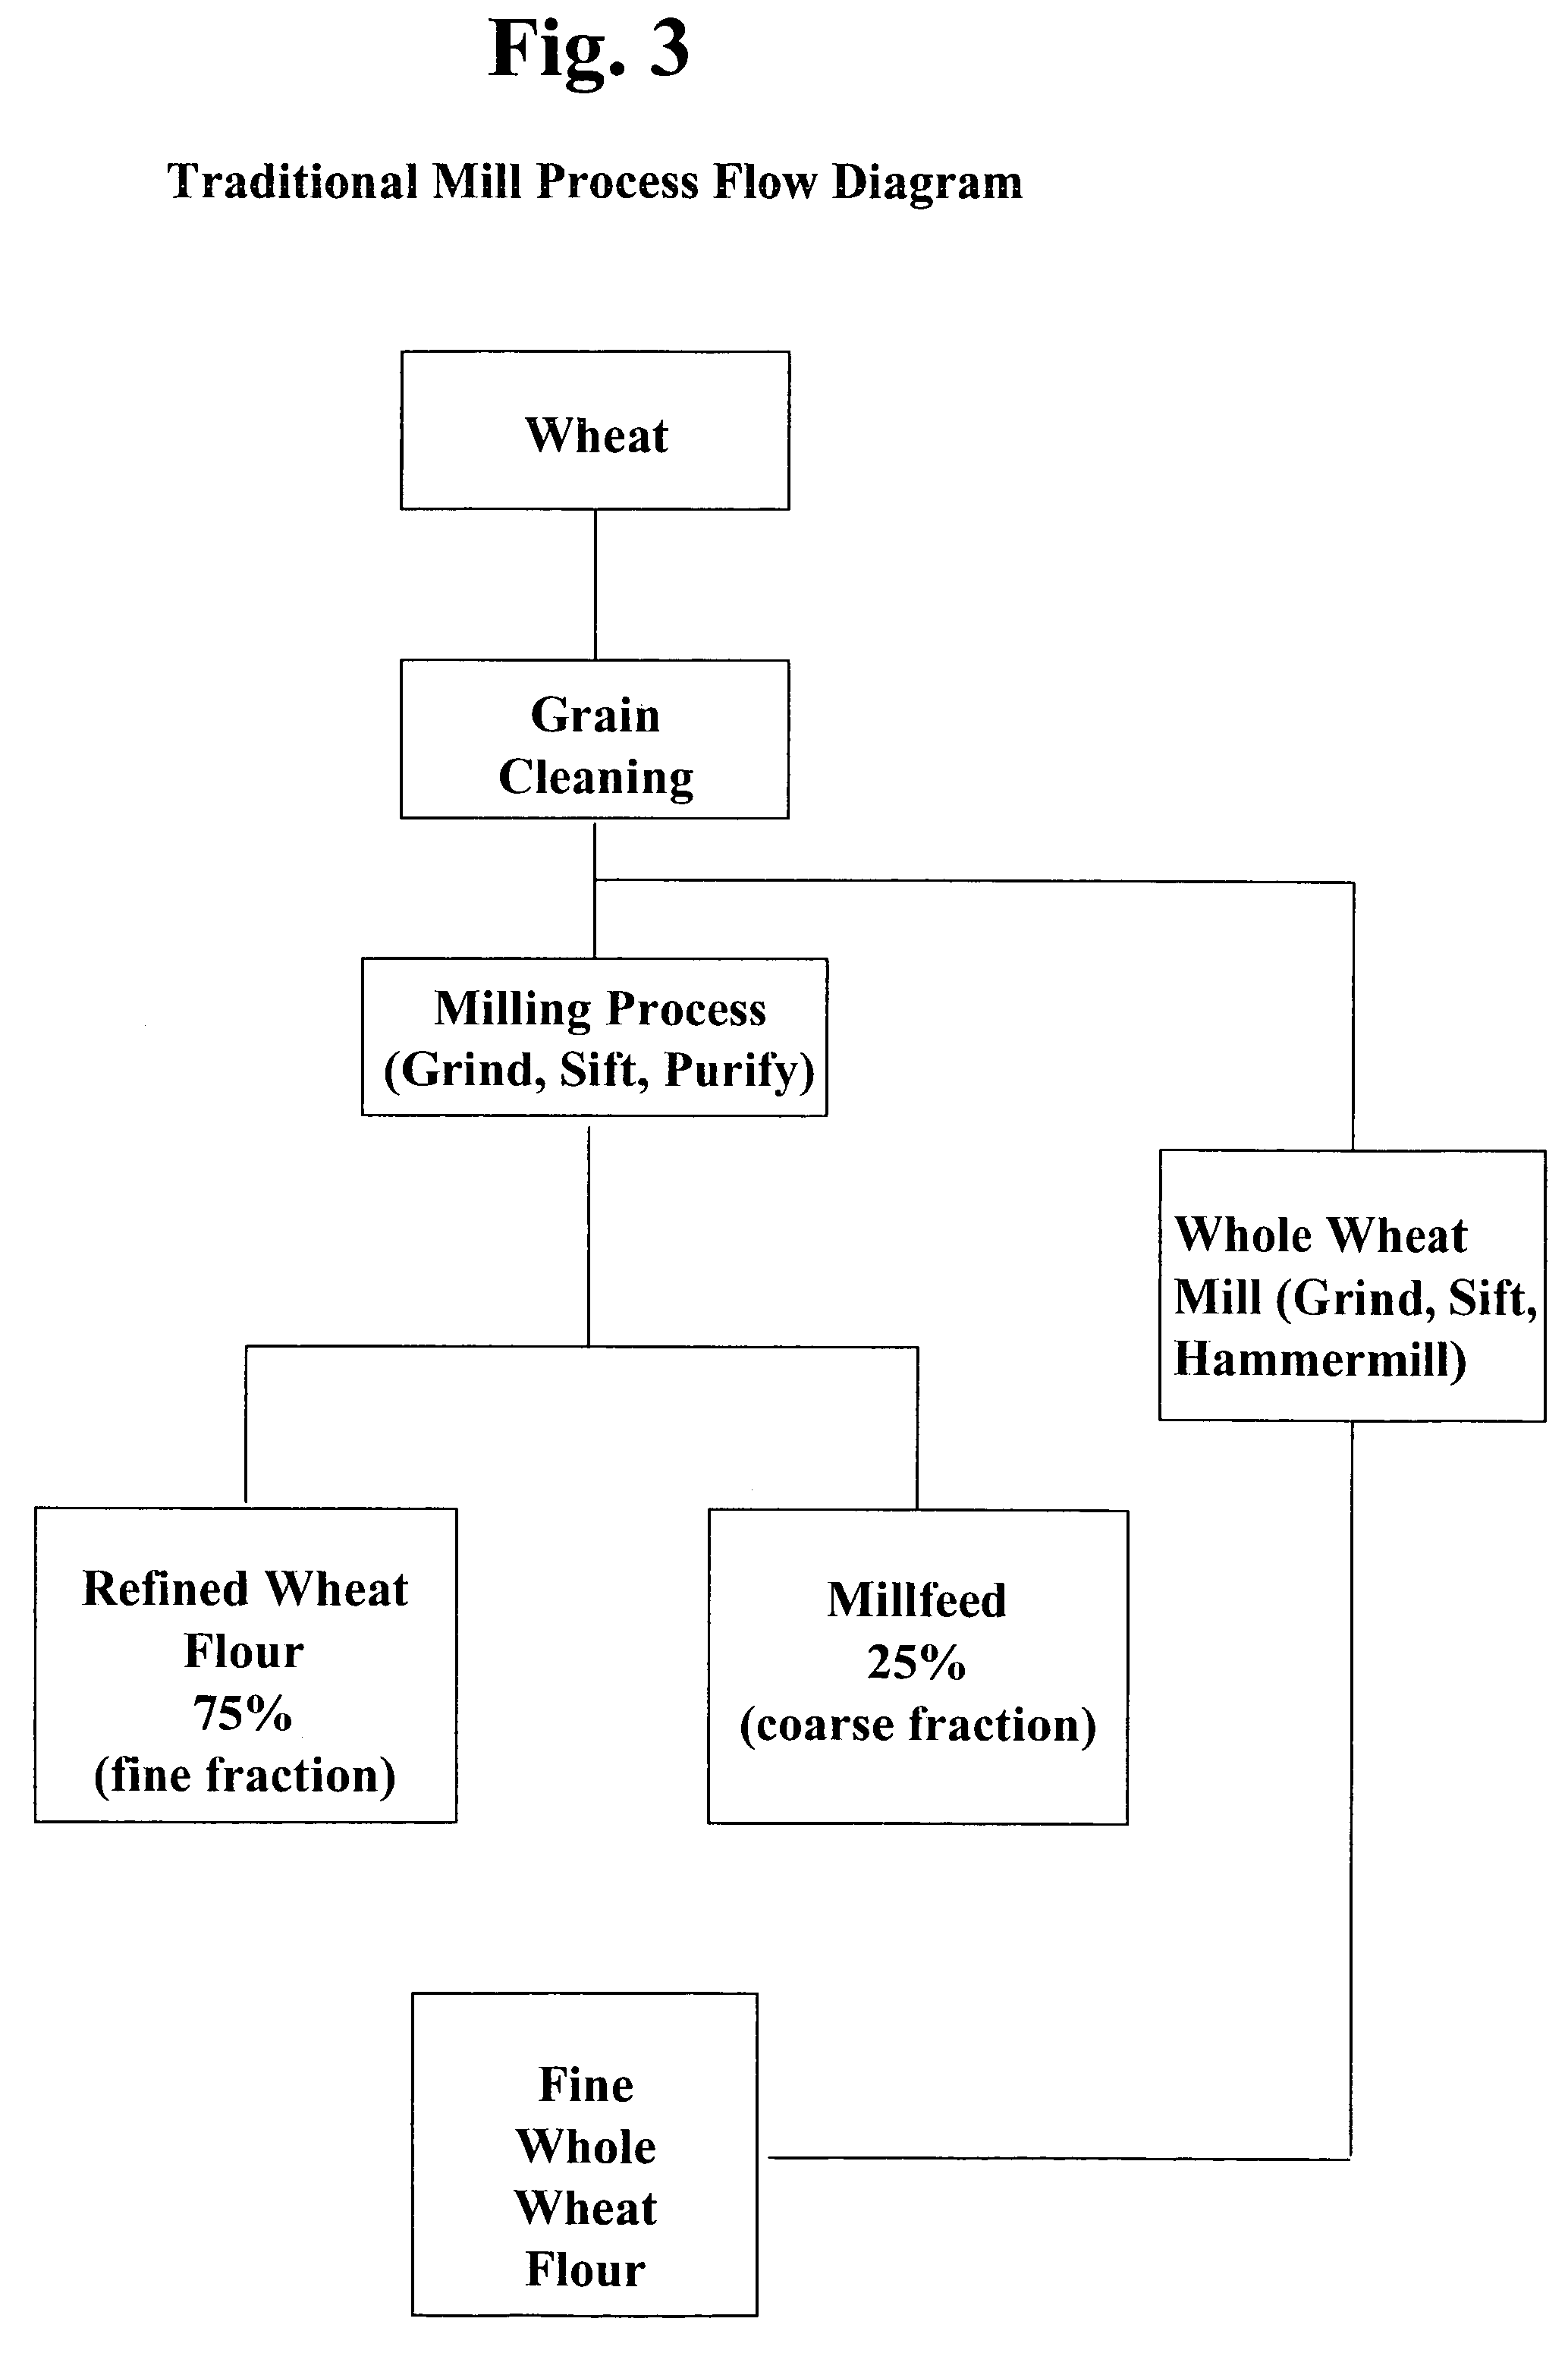 Wheat Milling Process Flow Chart Diagram Rice Mill How Is Flour Made From Patent Us7419694 For Producing An Ultrafine